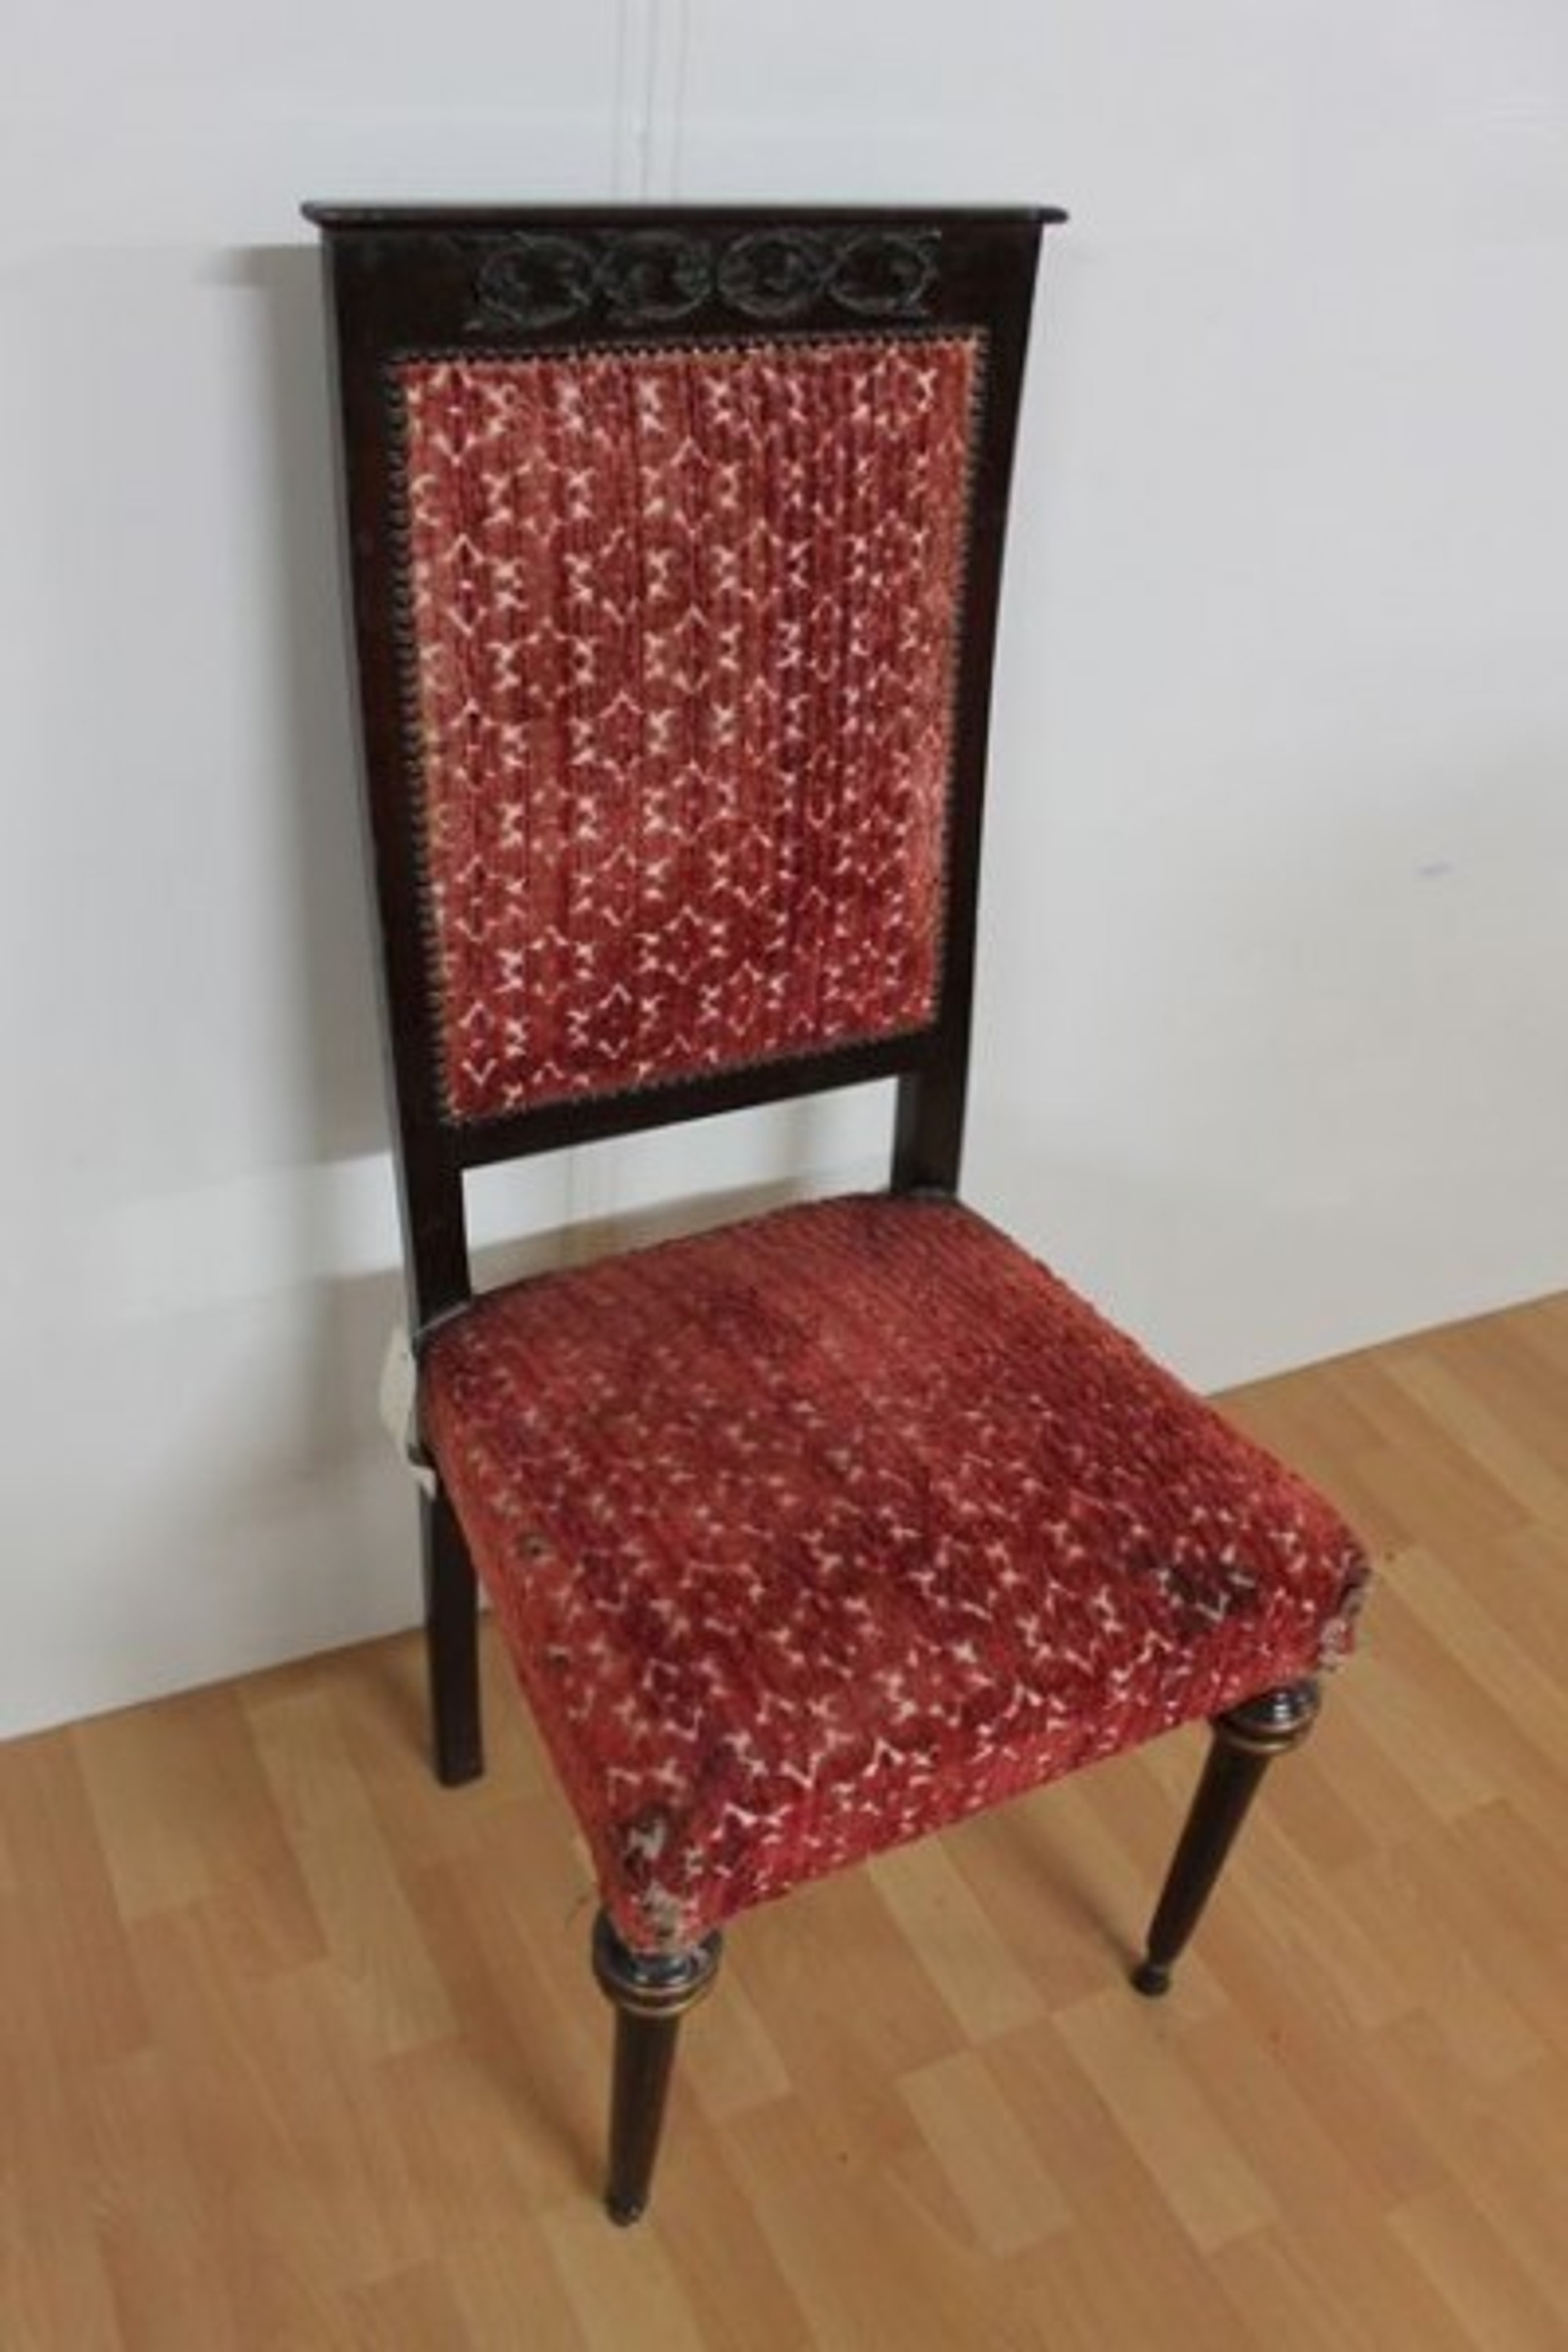 Style chaise ancien occasion baroque louis xv aess0008 ebay - Chaise louis xv occasion ...